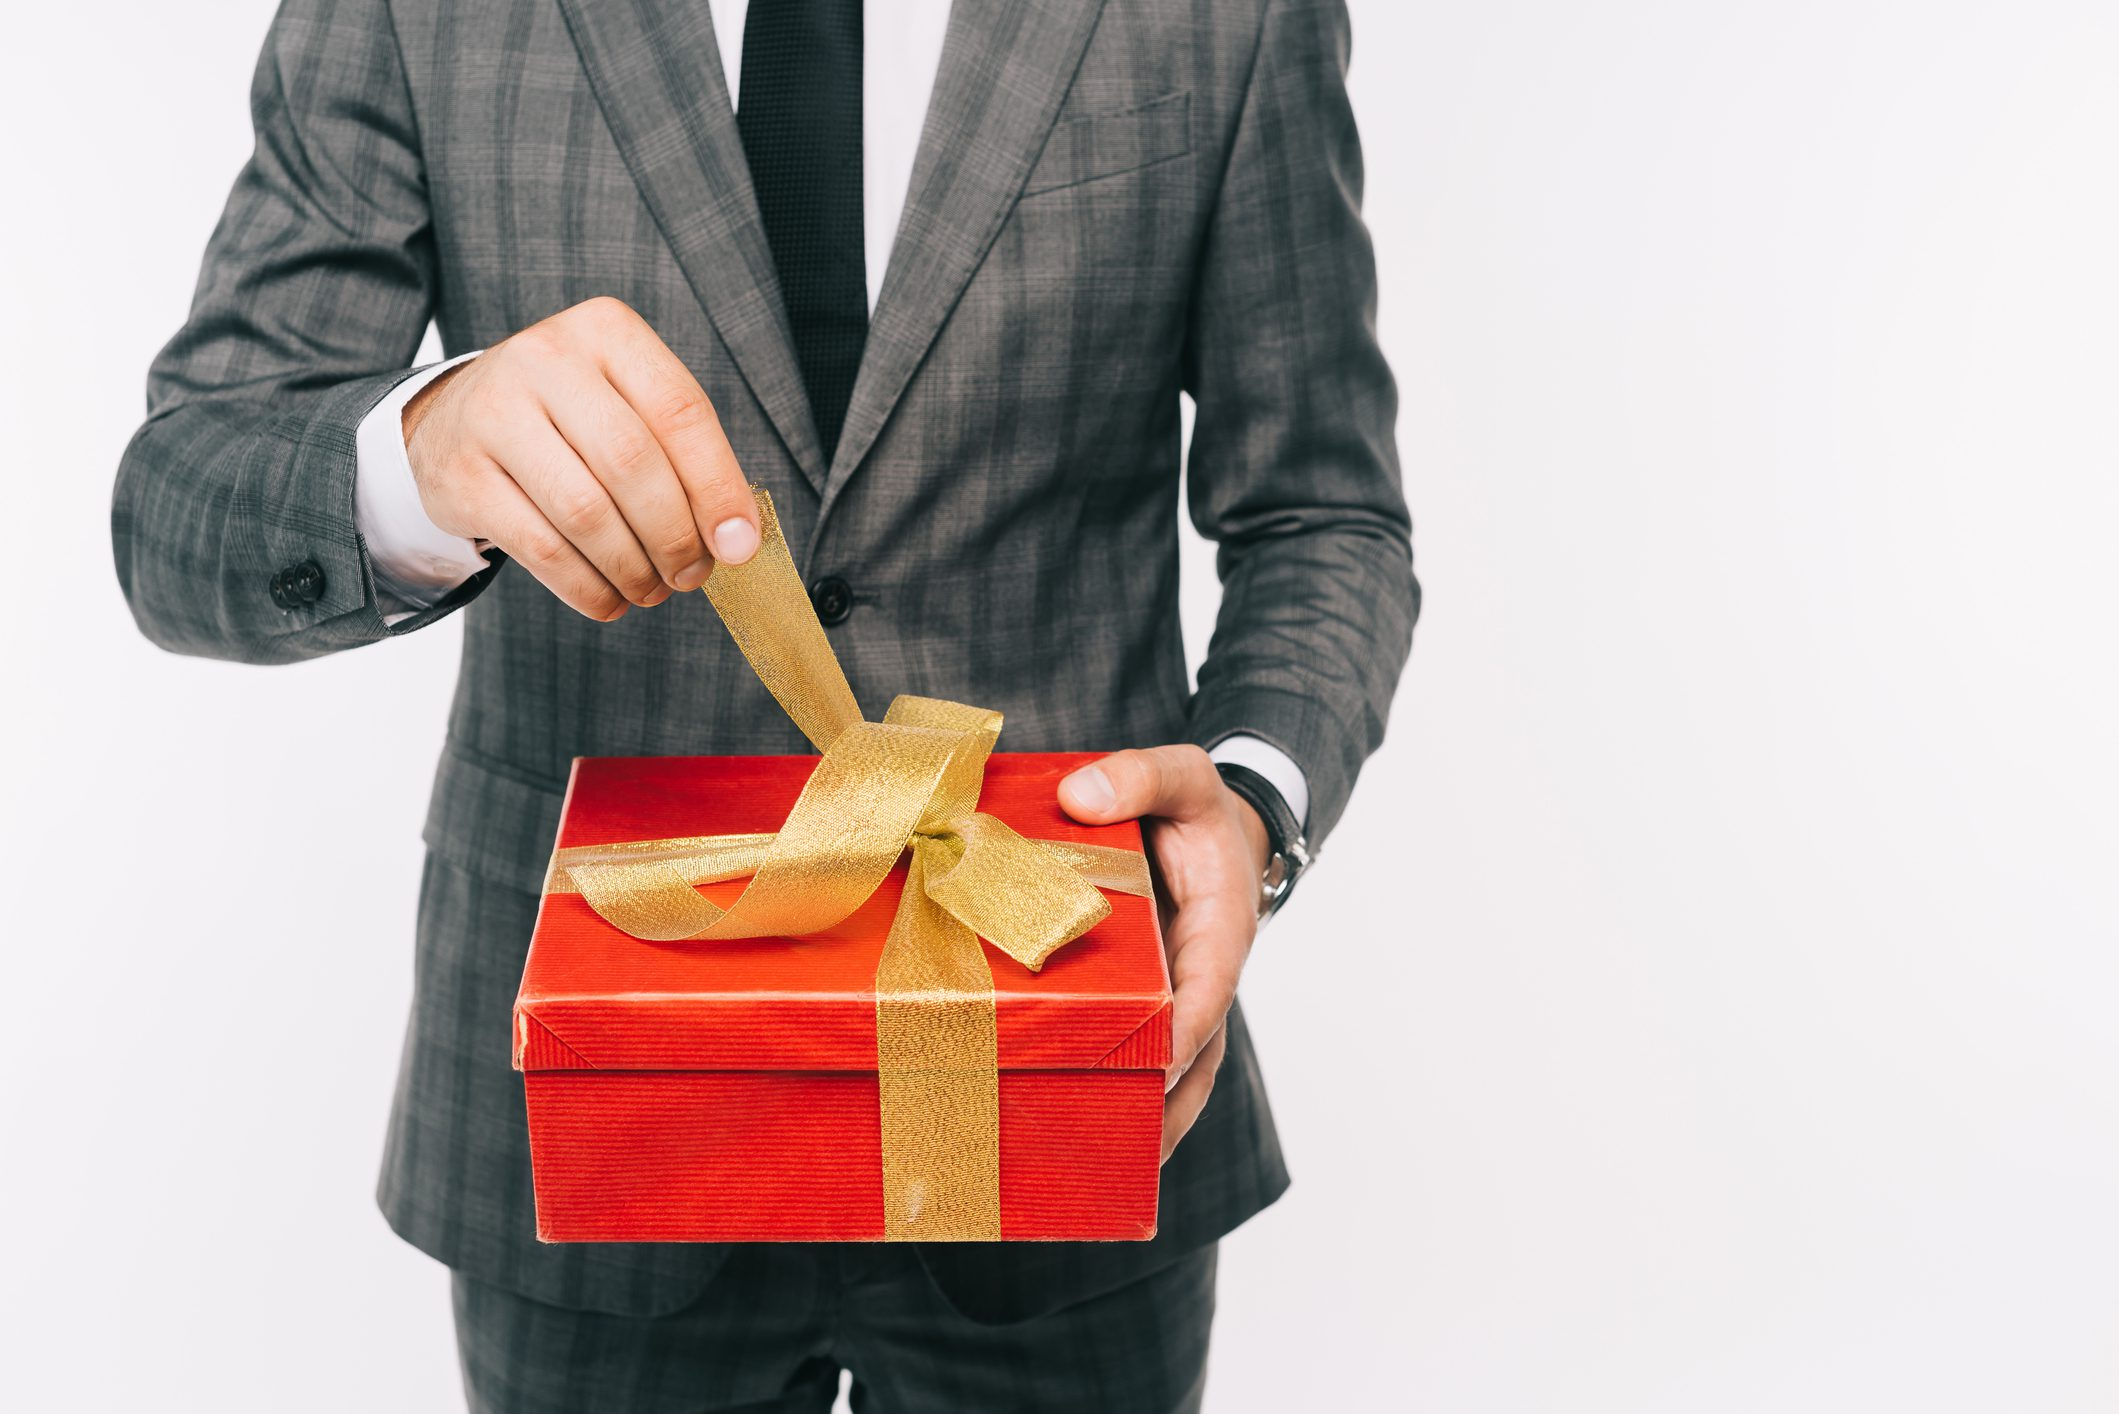 Personalized Business Gifts That Make an Impression